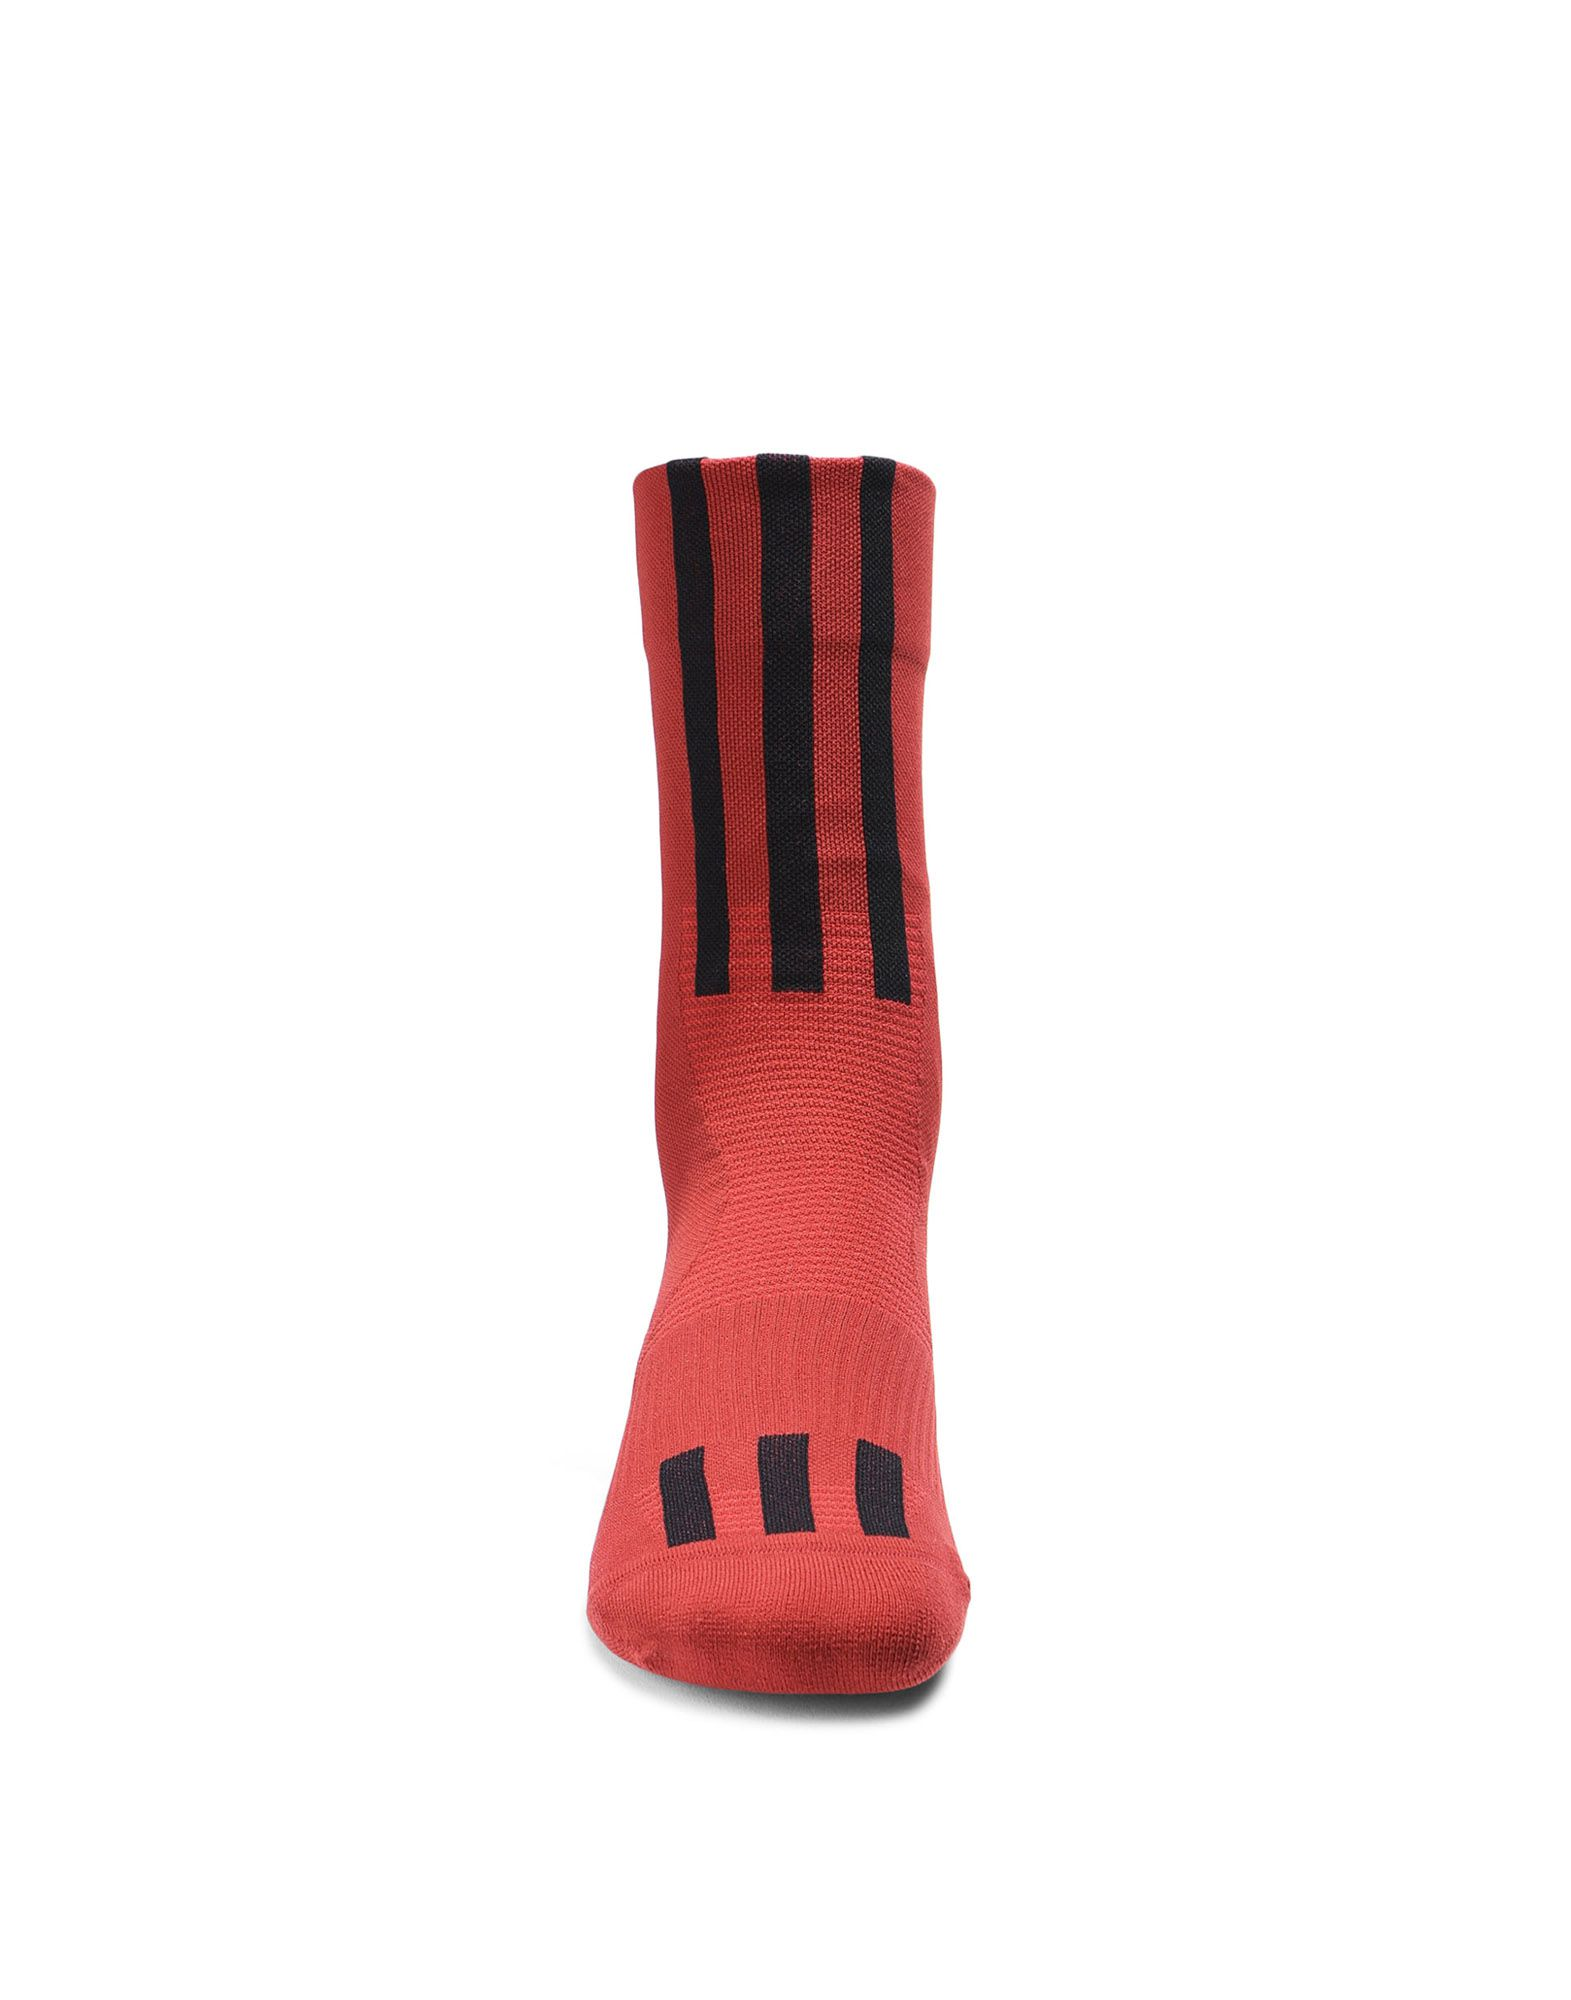 Y-3 Y-3 Tech Socks Socks E r